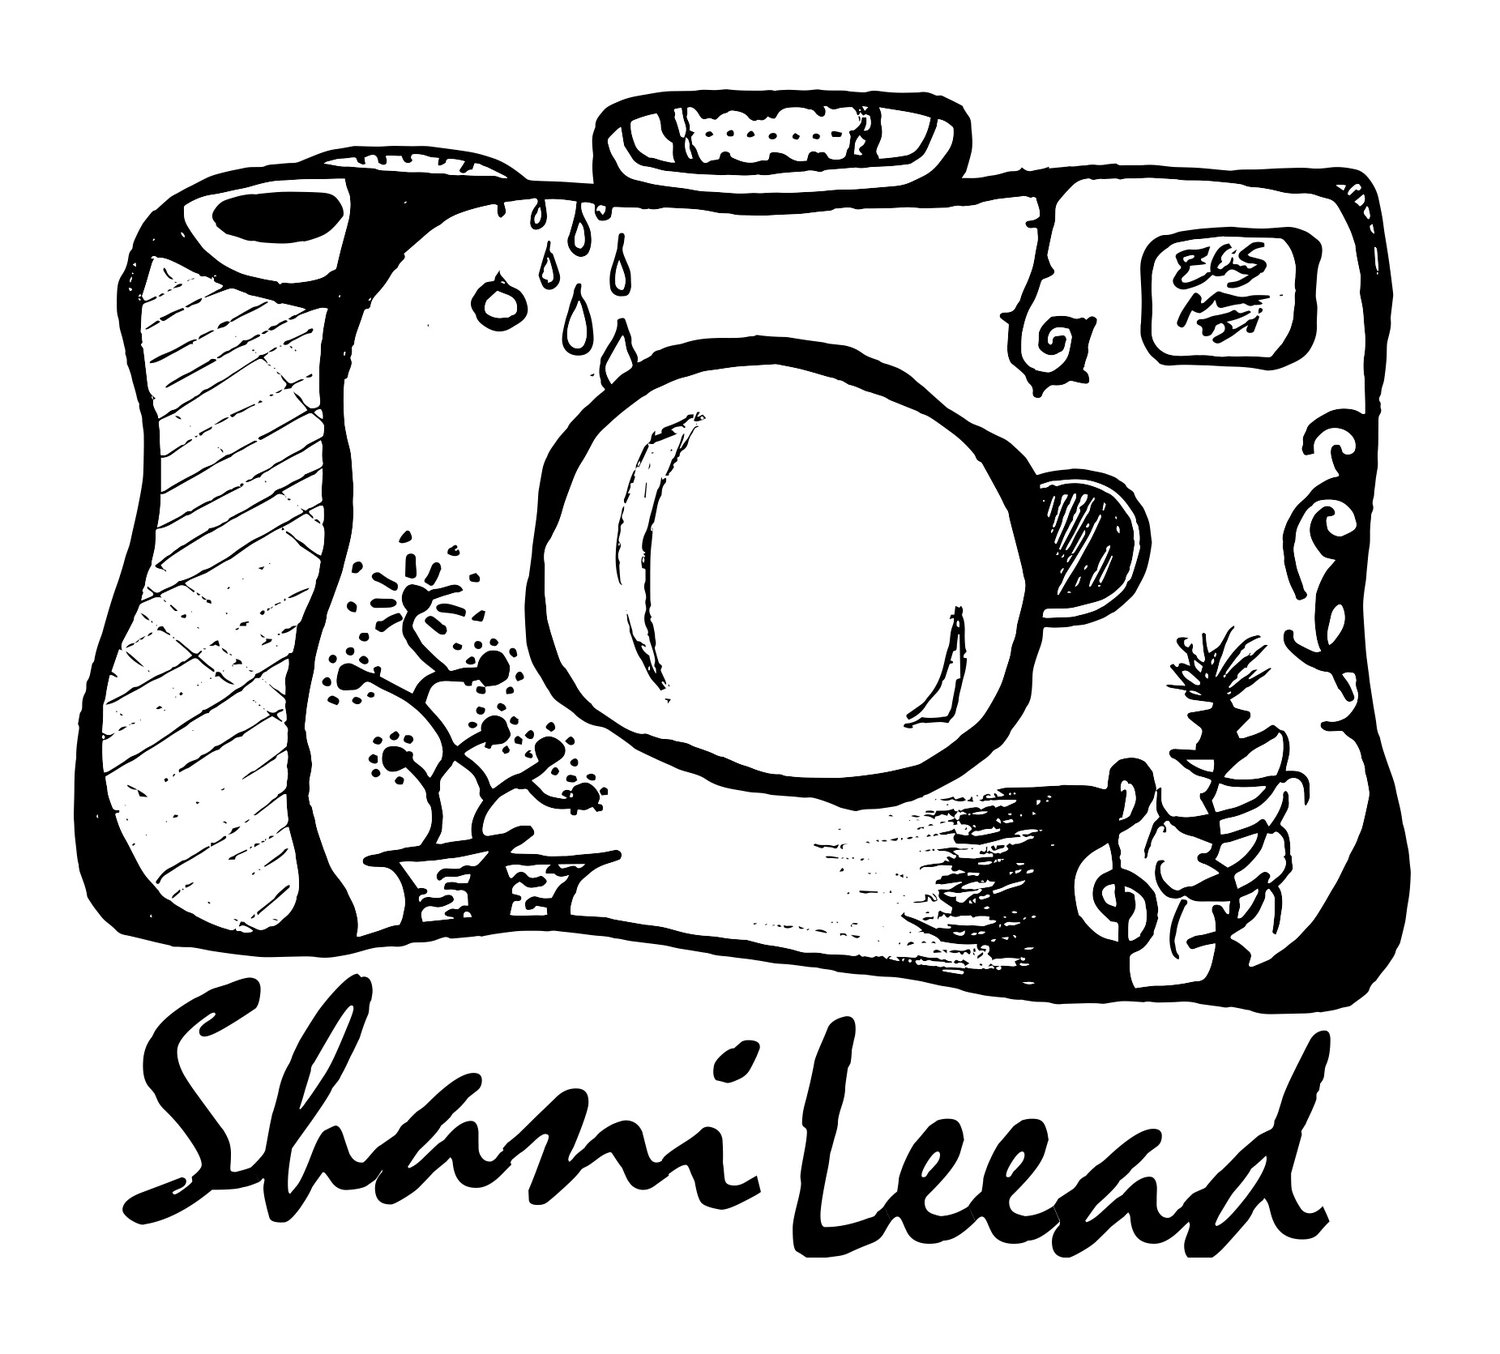 Shani Leead Photography + Illustration